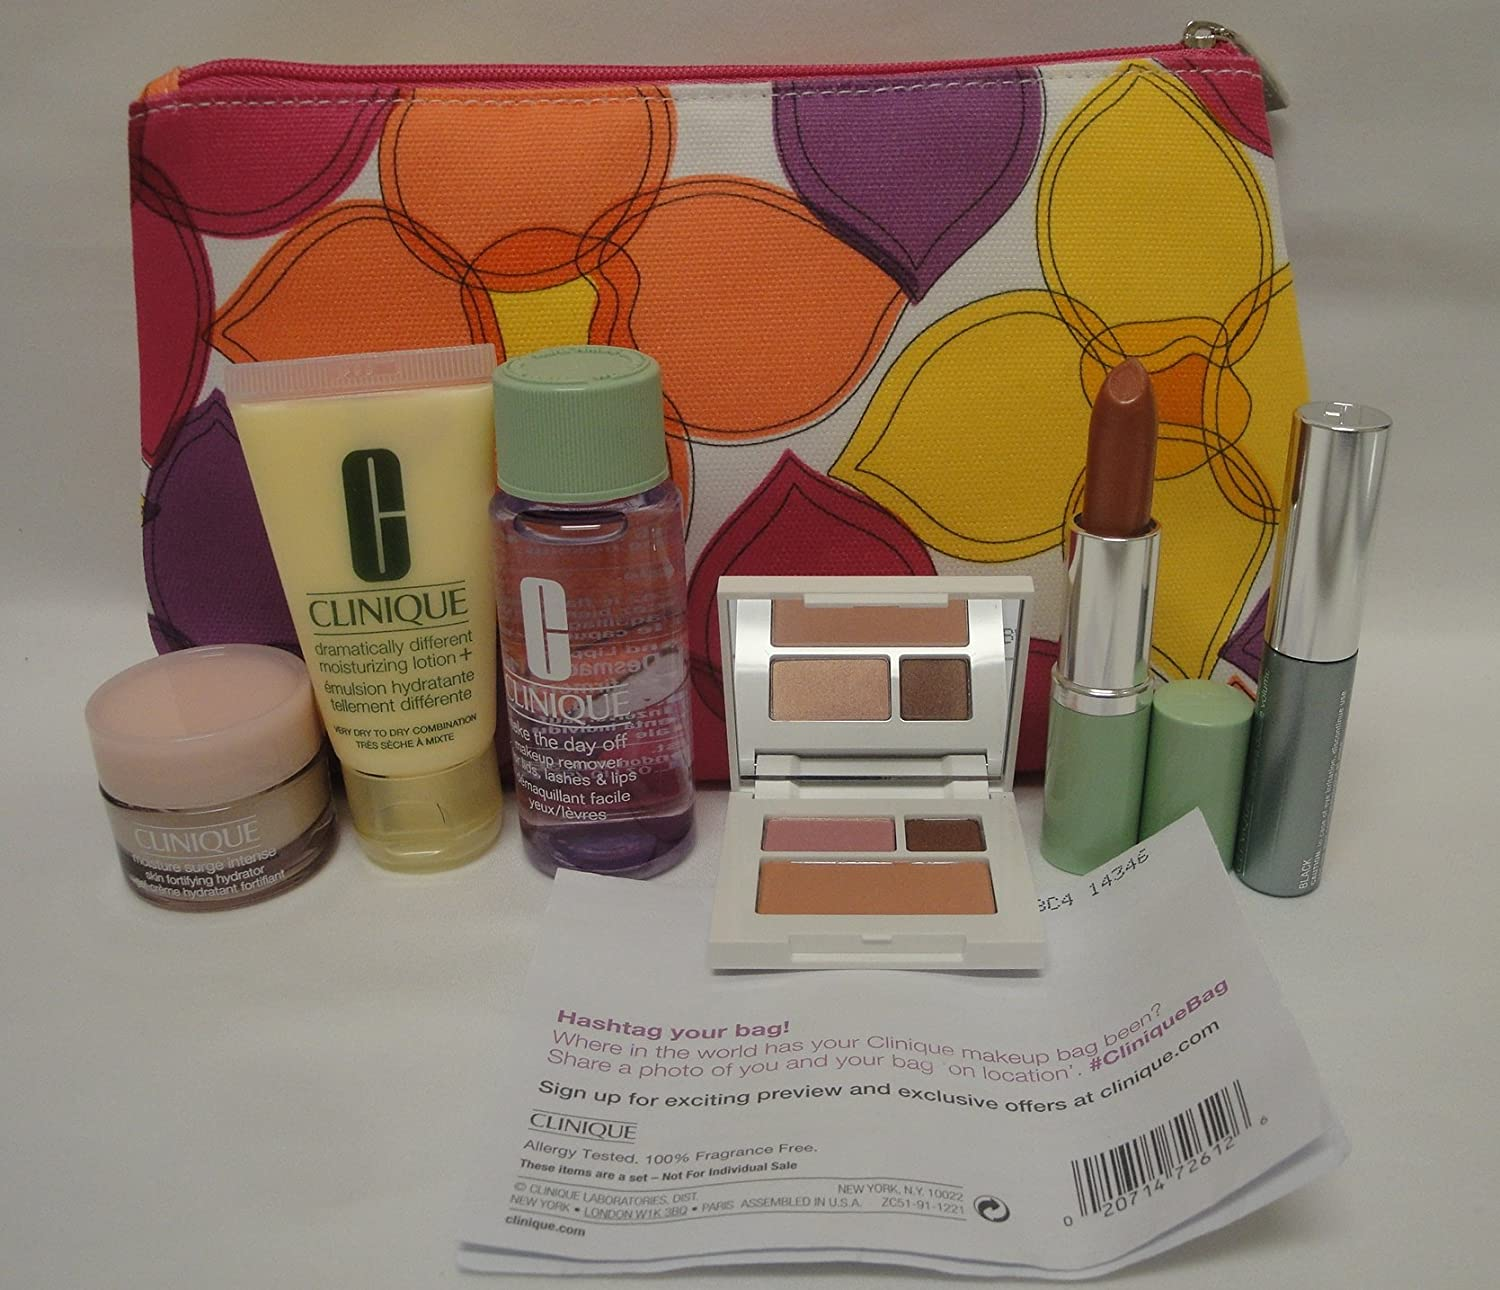 NEW Clinique Skin Care Makeup 7 Pc Gift Set Travel Size Pinks Spring 2015 Value 70